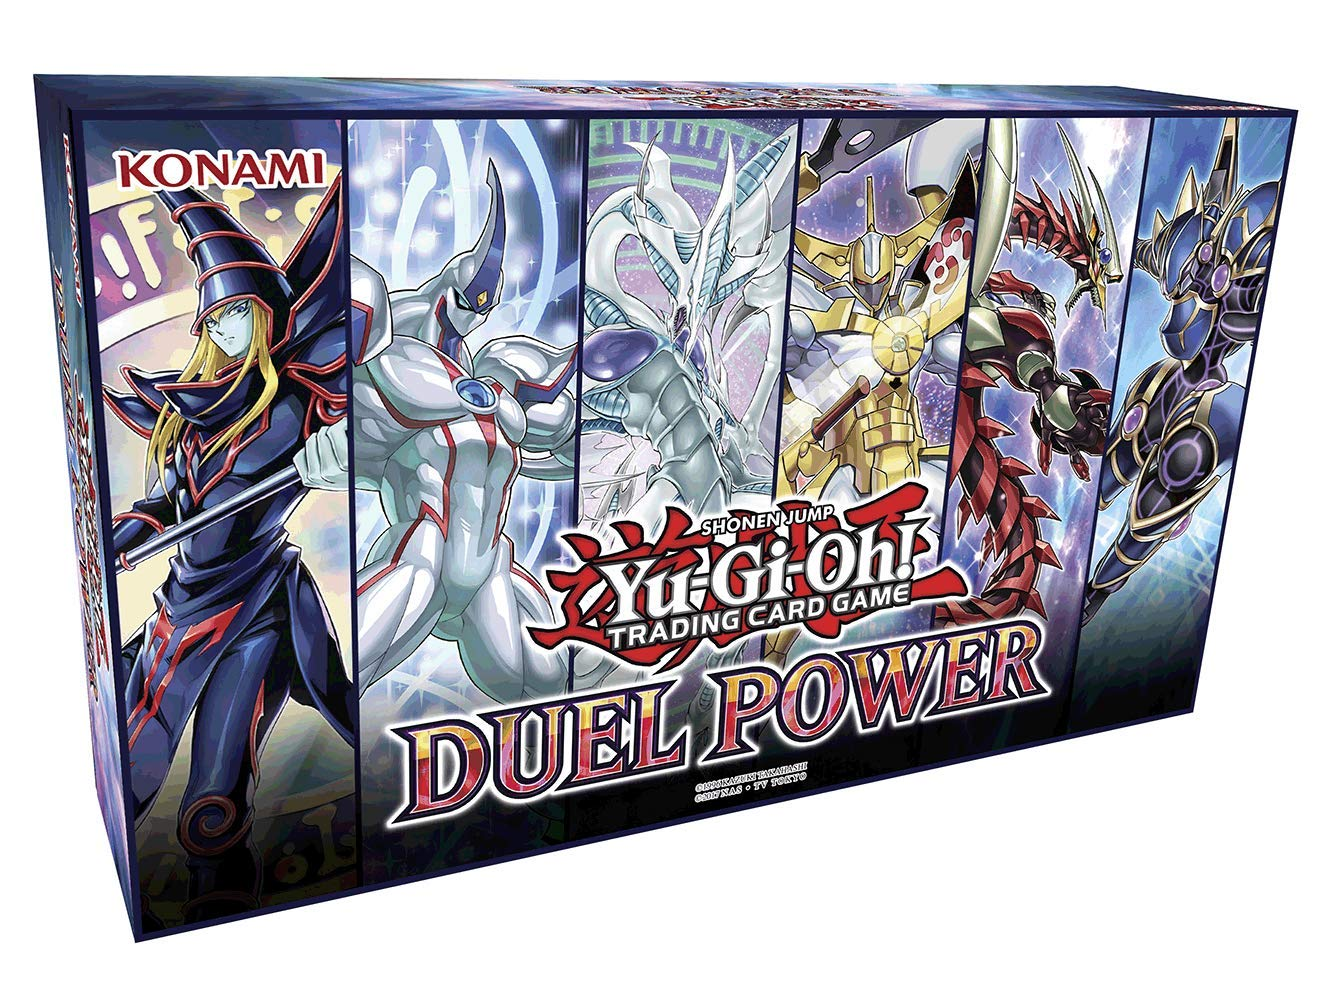 Yu-Gi-Oh! TCG: Duel Power Box Collector's Chest - 6 Rare Cards & Booster Pack